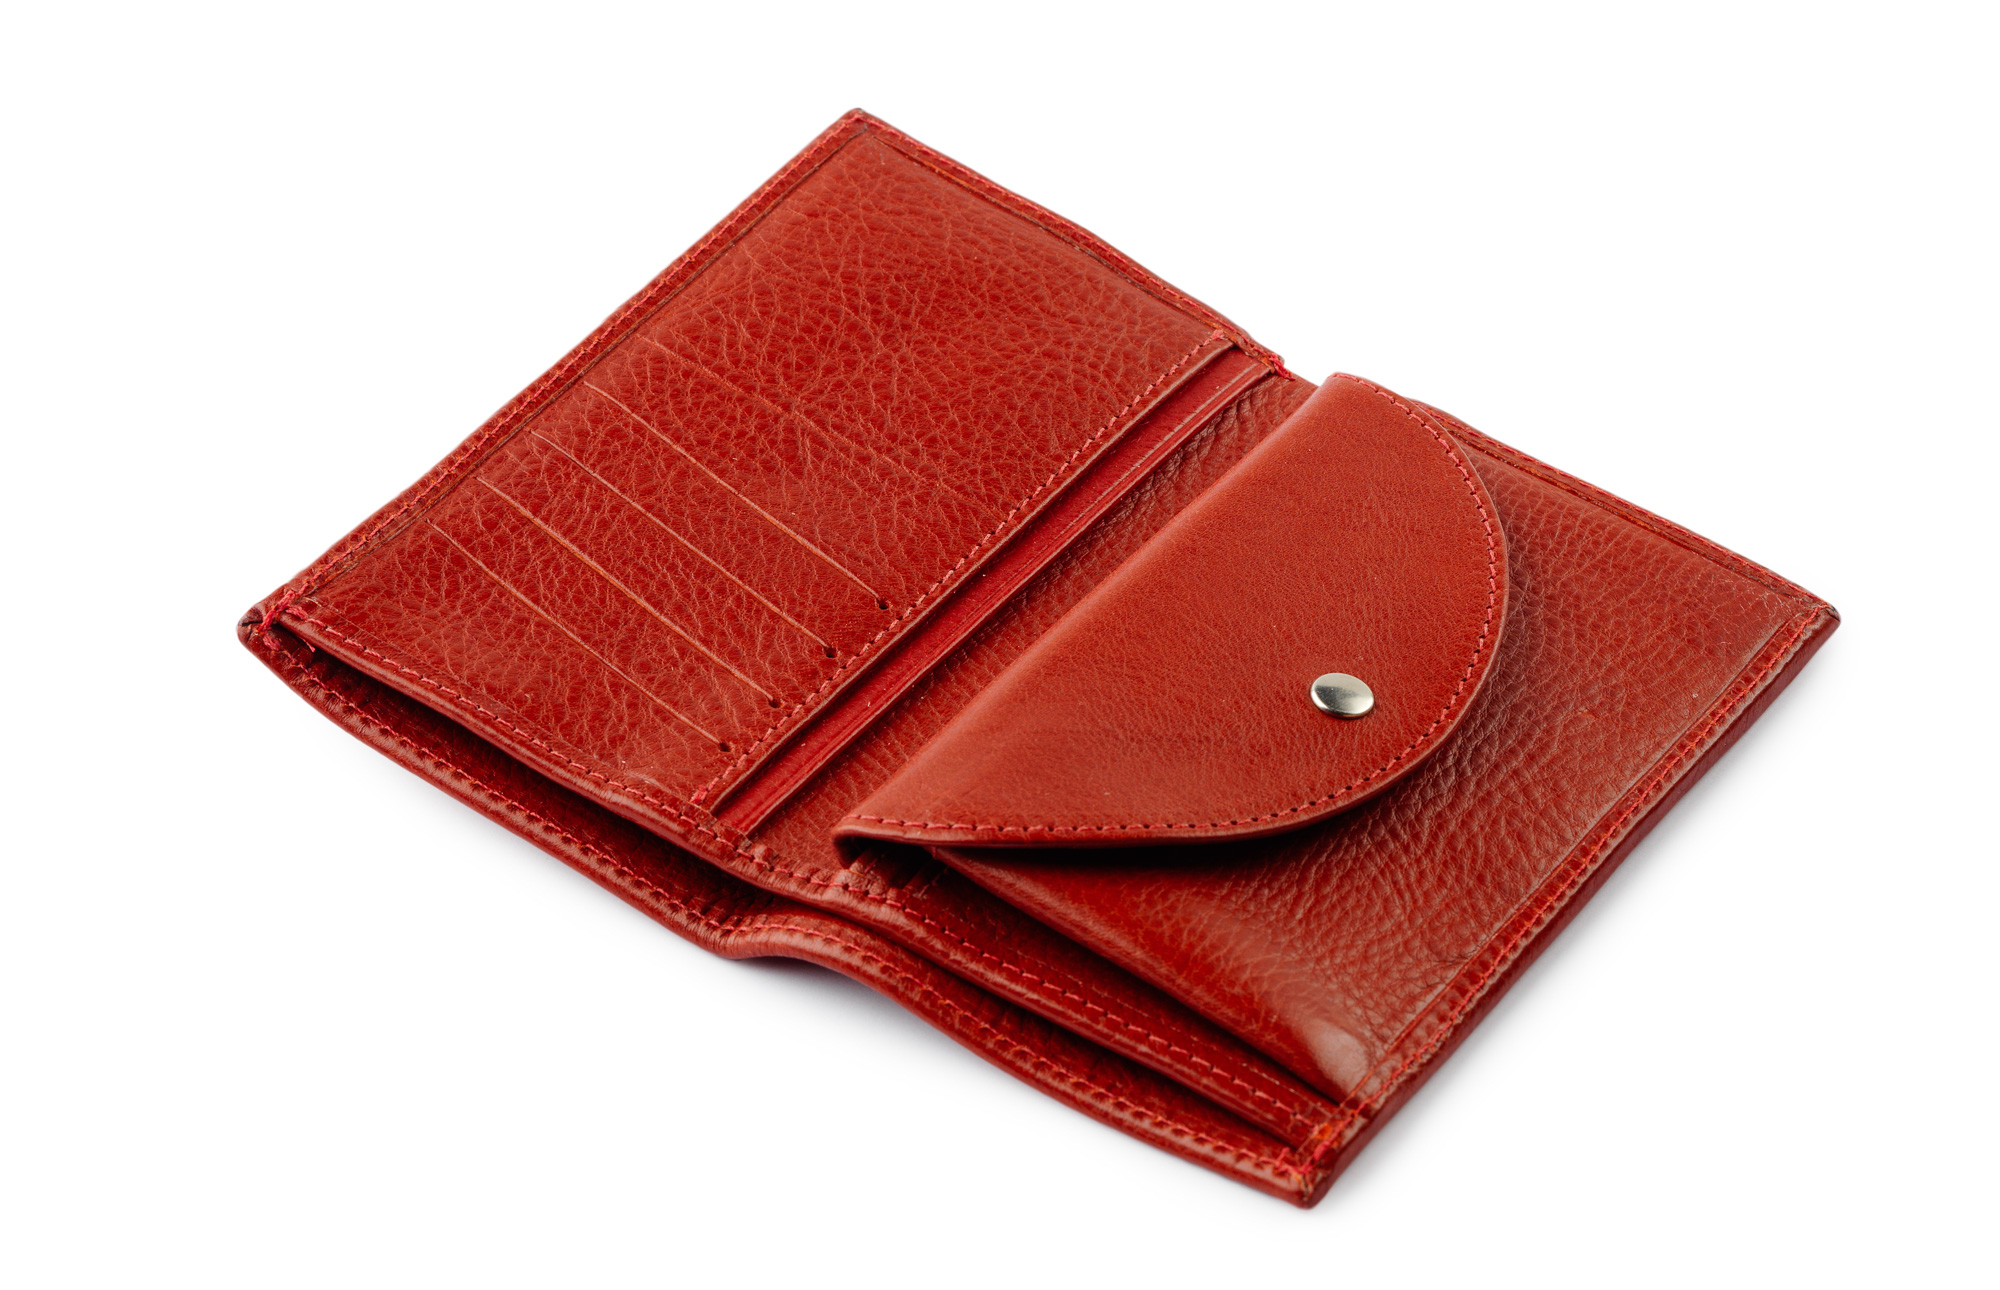 Holden Ladies Medium Leather Wallet Red Inside 2 Copy QC.jpg